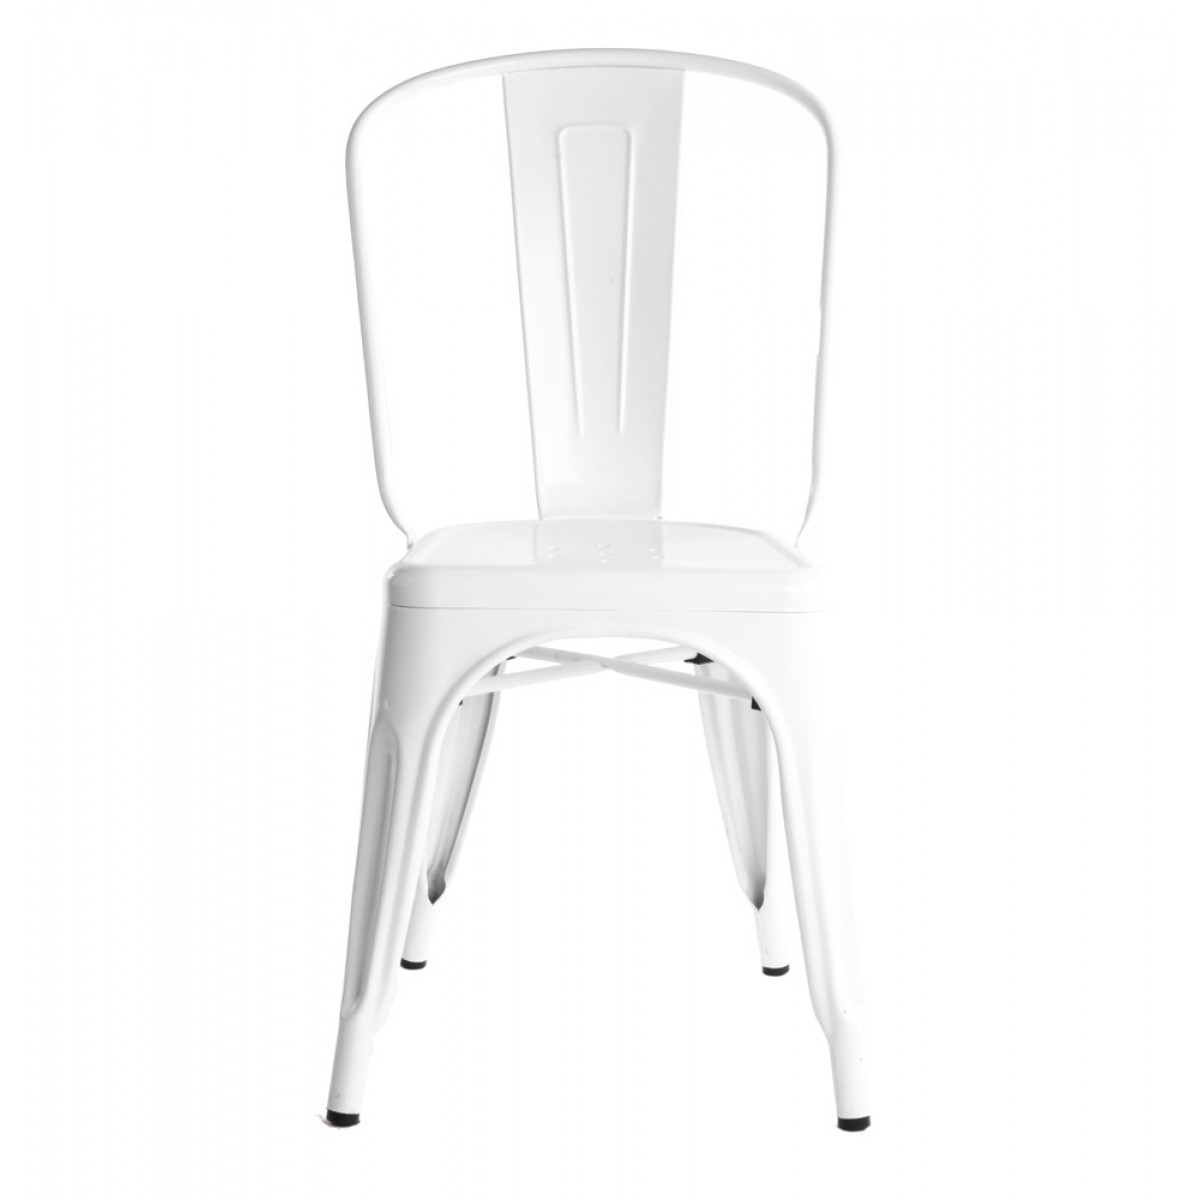 White tolix chair - With Your Purchase Receive At No Cost